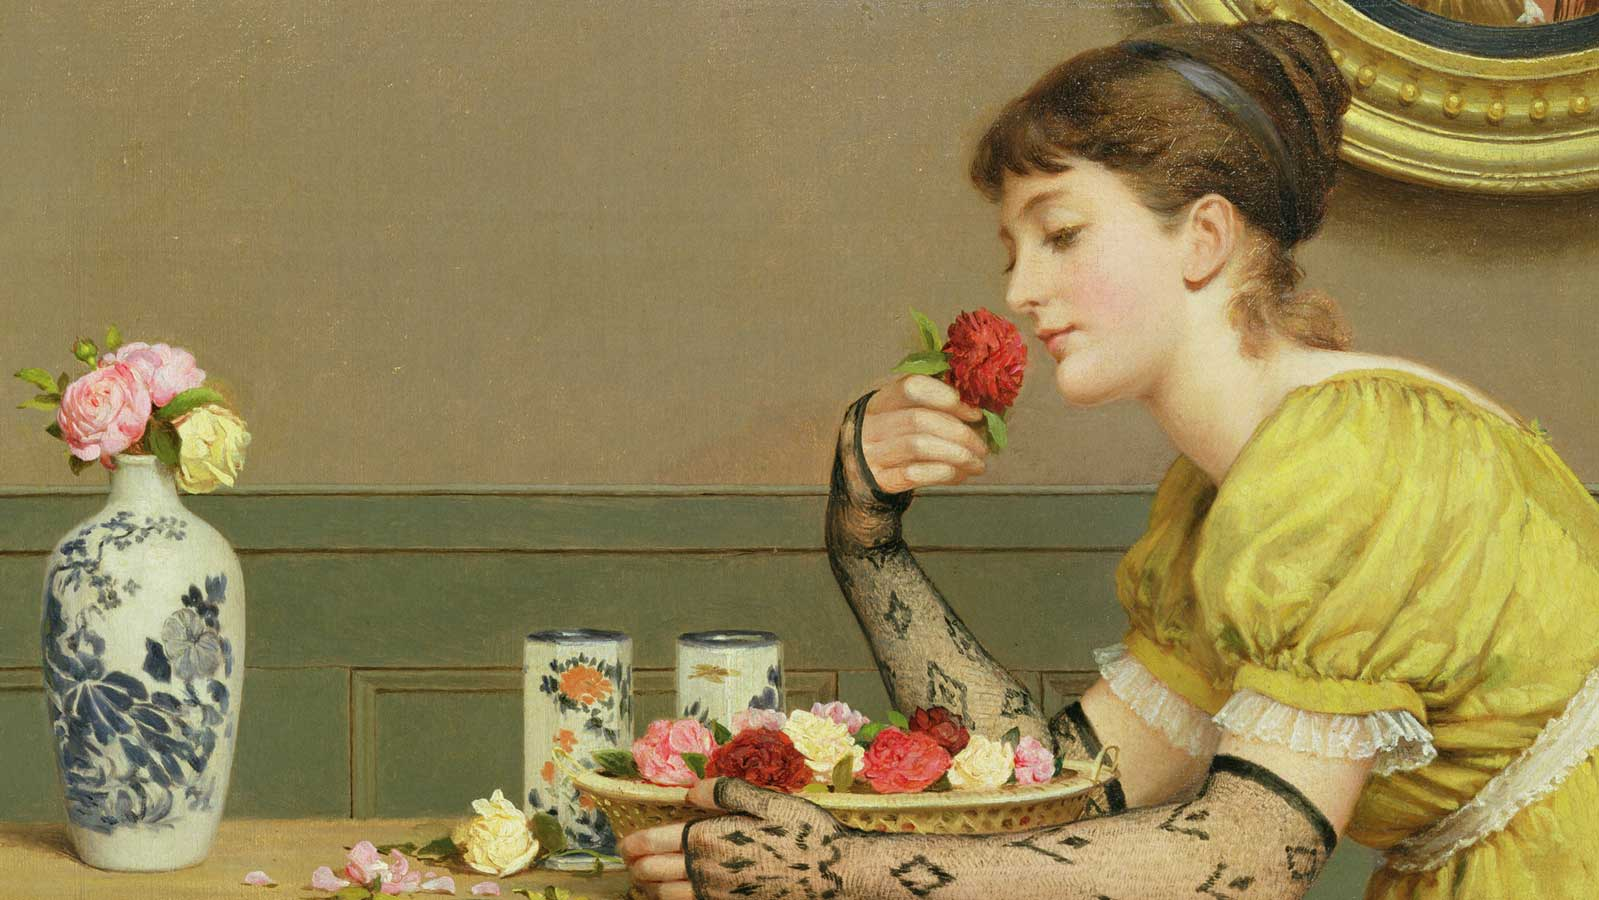 Young girl sits at a table smelling a rose - taken from the cover of Vanity Fair